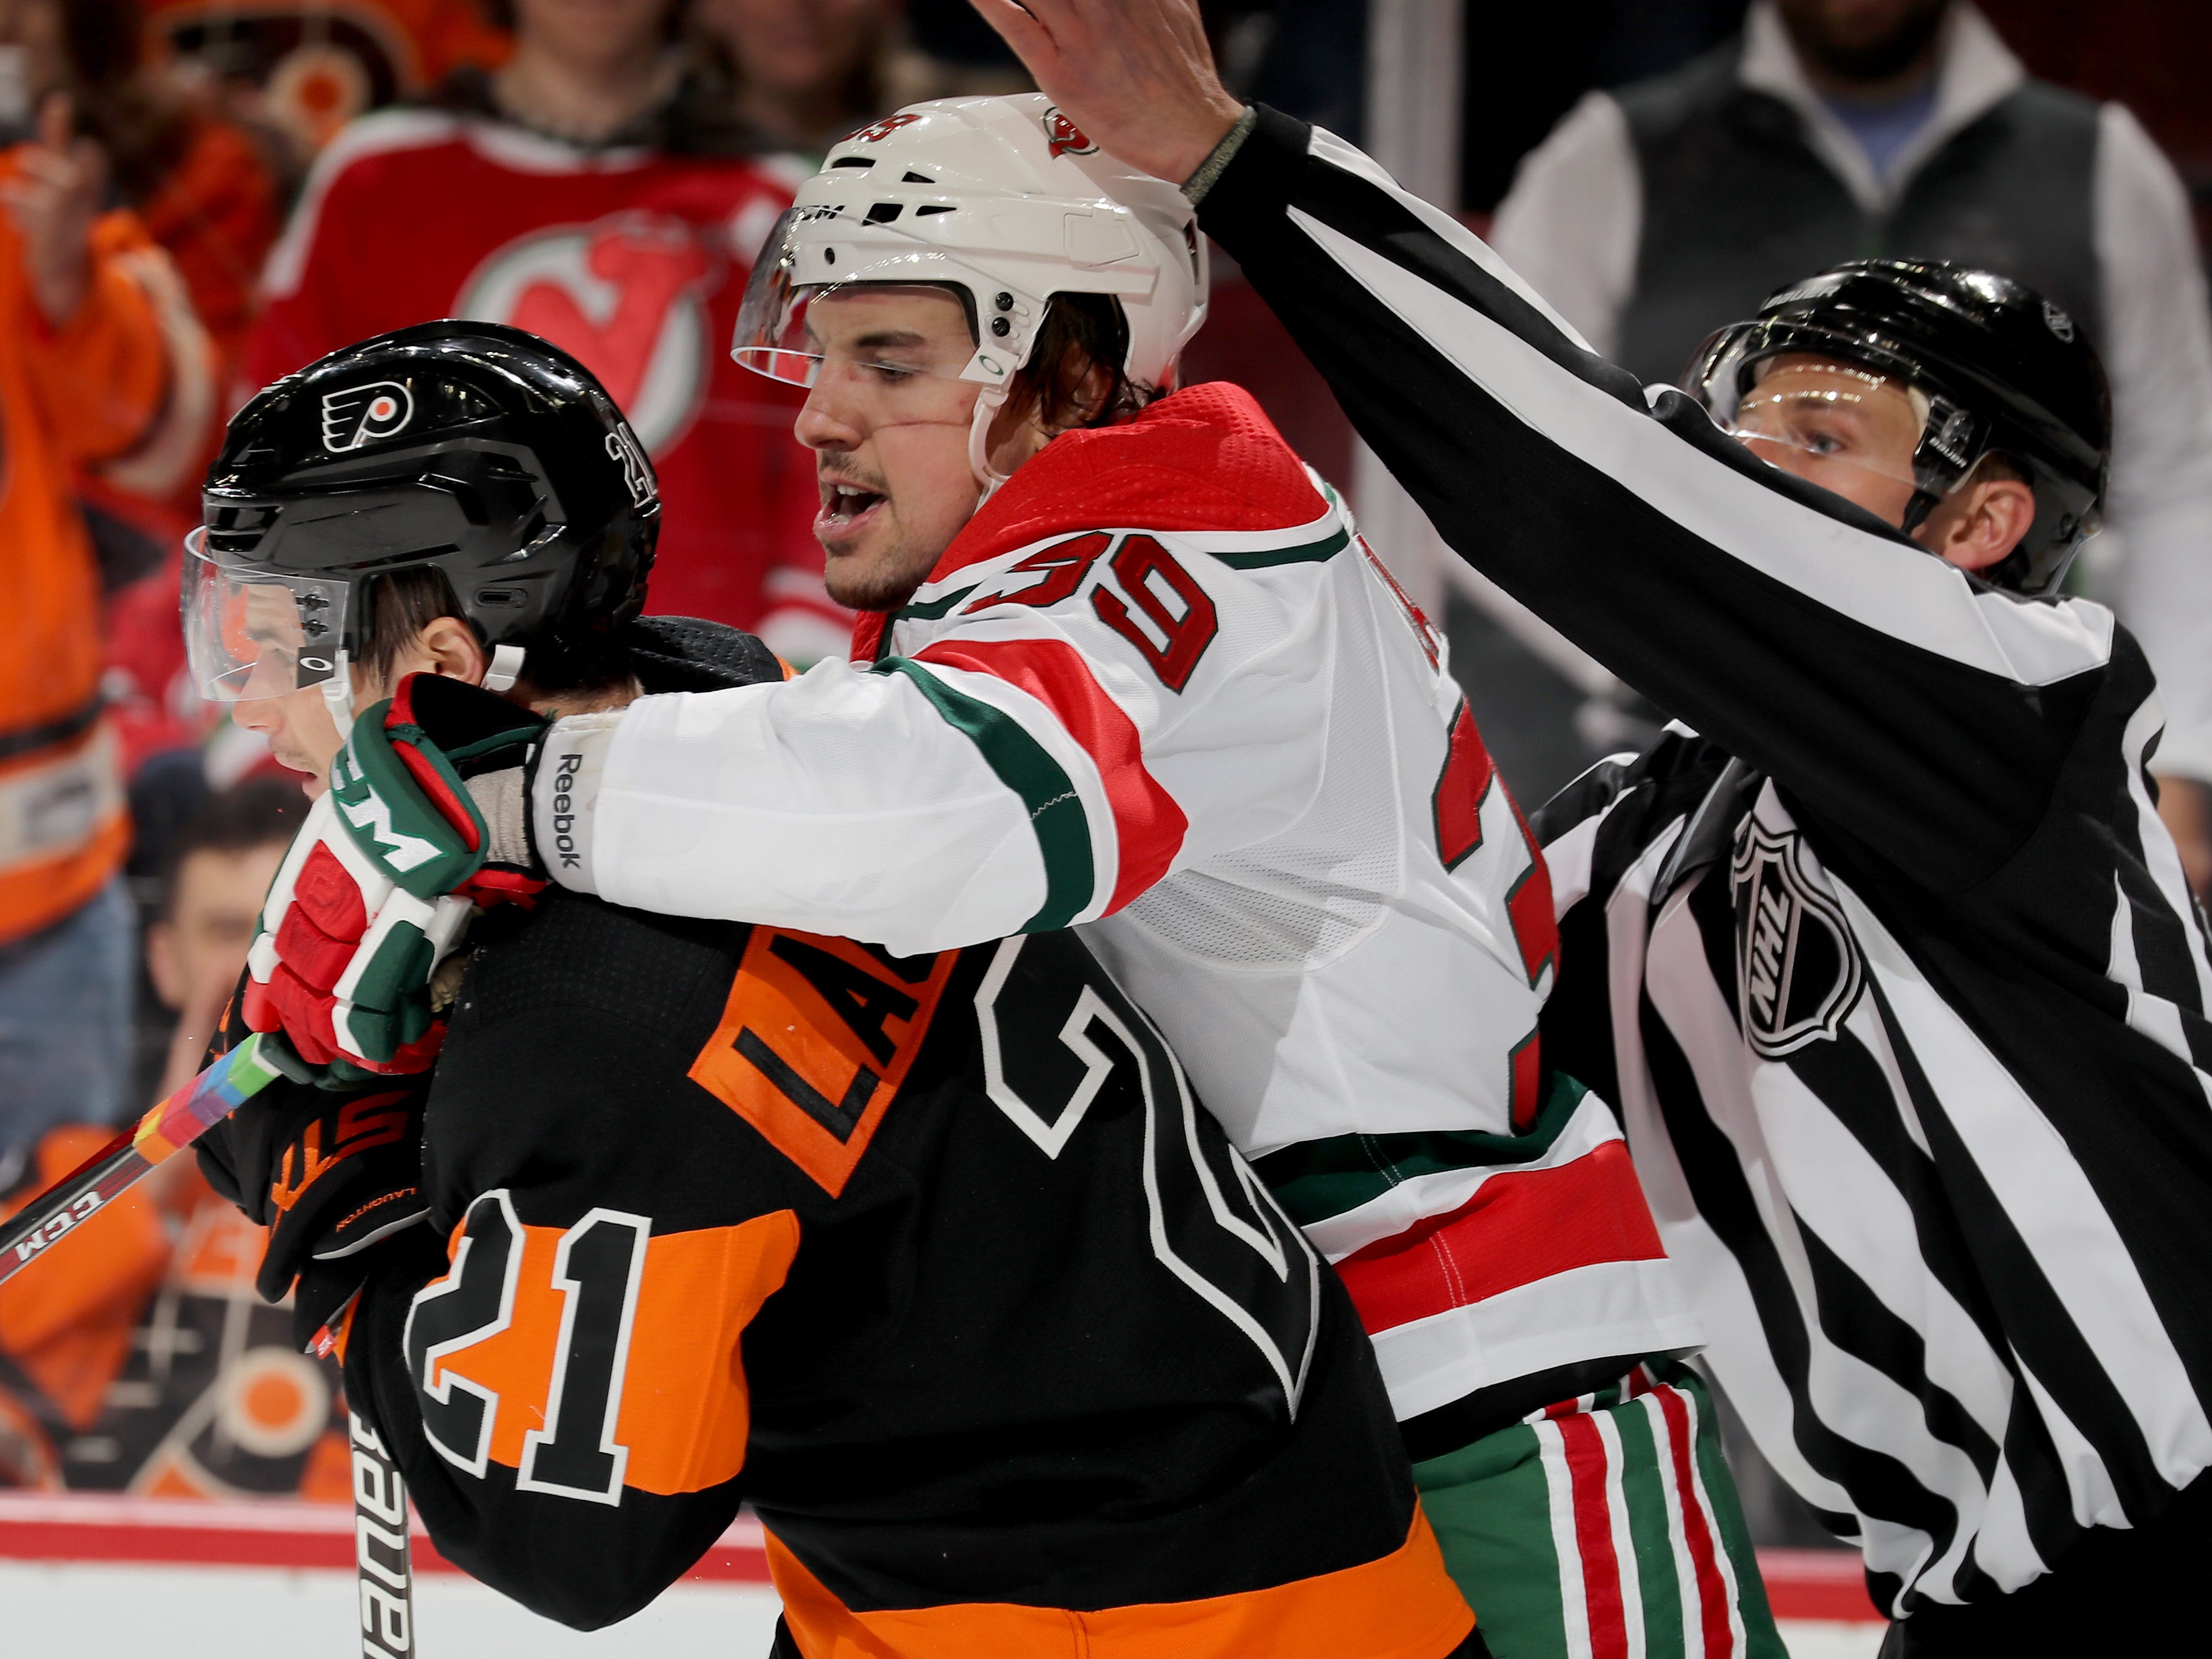 March 2: The New Jersey Devils' Kurtis Gabriel (39) was suspended one game for boarding the Philadelphia Flyers' Nolan Patrick (not pictured). Lost pay: $3,494.62.